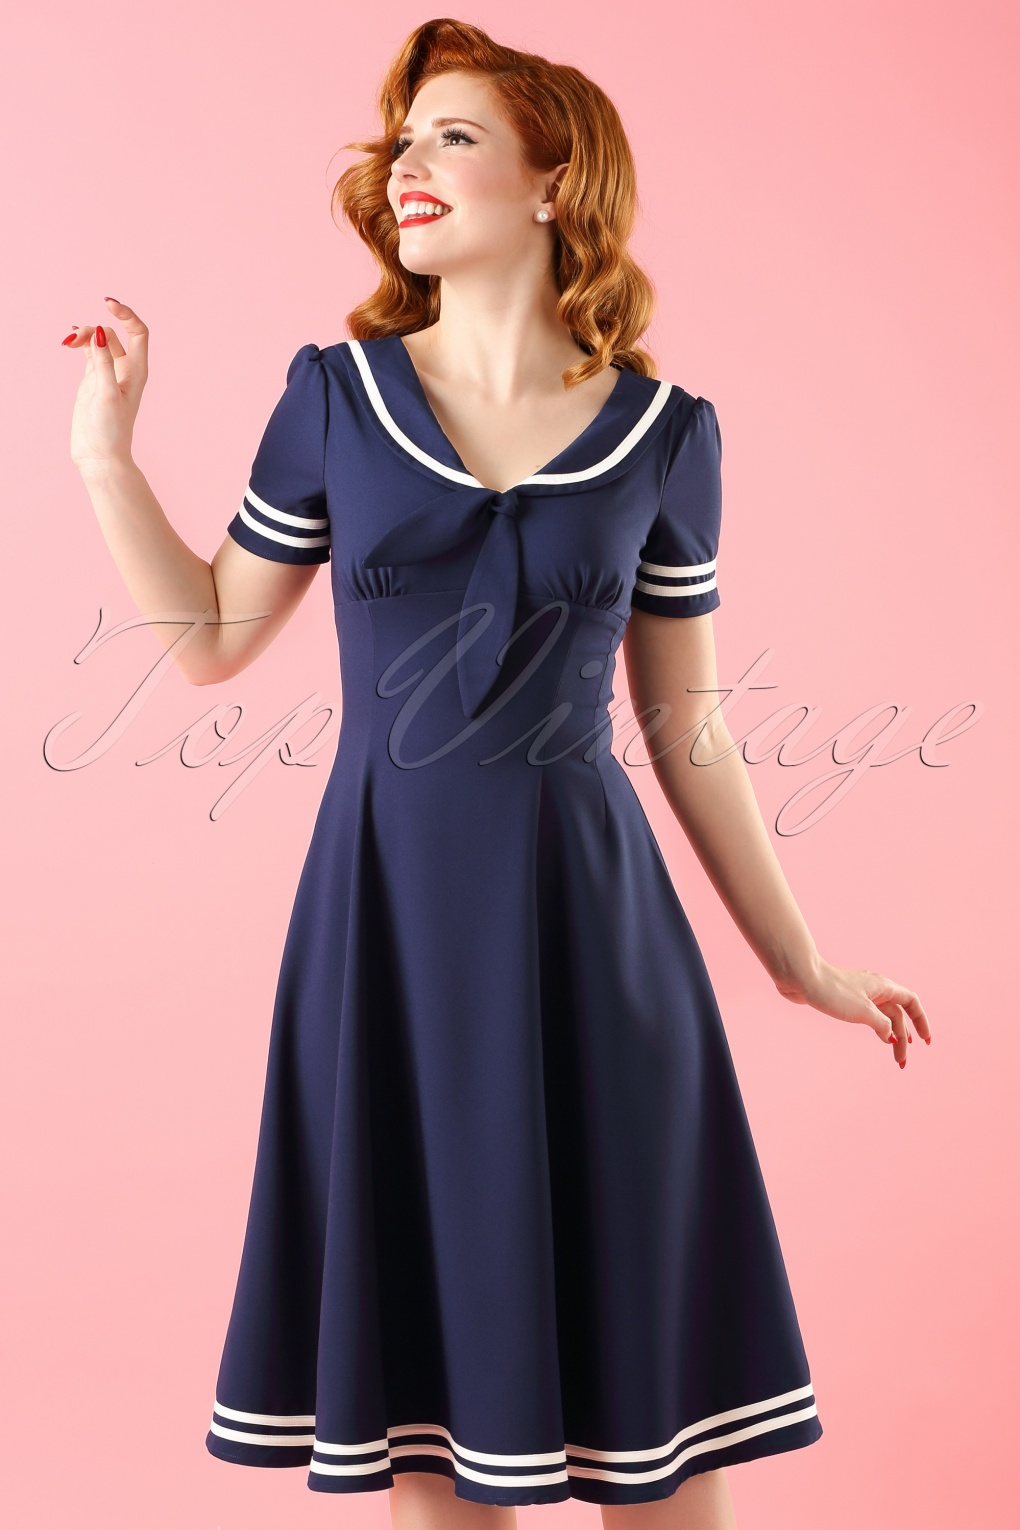 60s 70s Plus Size Dresses, Clothing, Costumes 50s Ambleside Swing Dress in Navy £52.49 AT vintagedancer.com